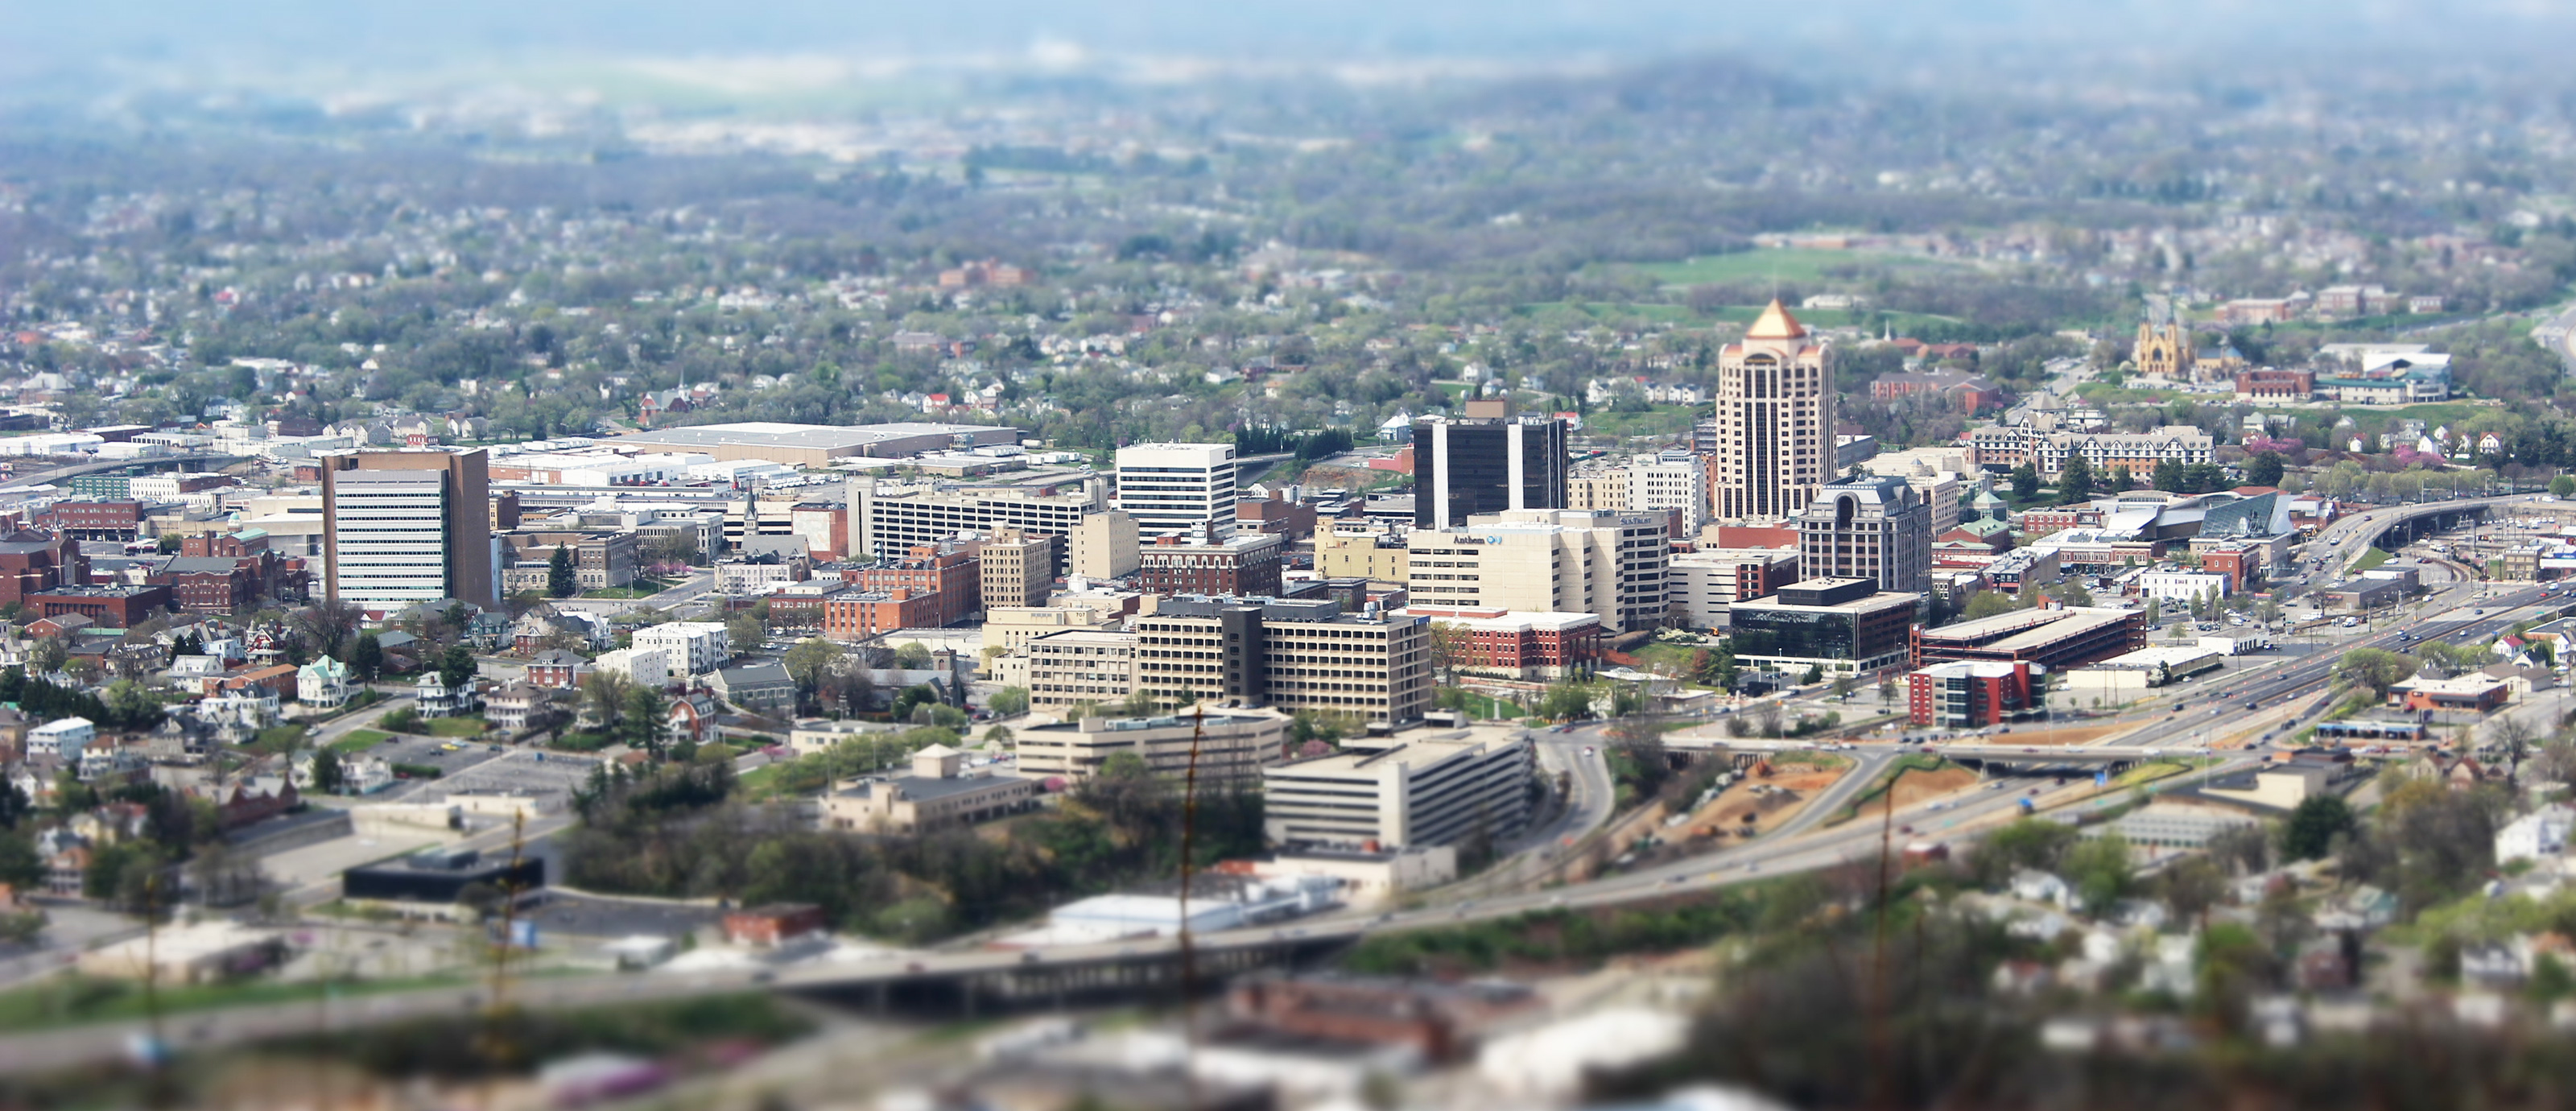 City of Roanoke. Photo © Chuck Borowicz.